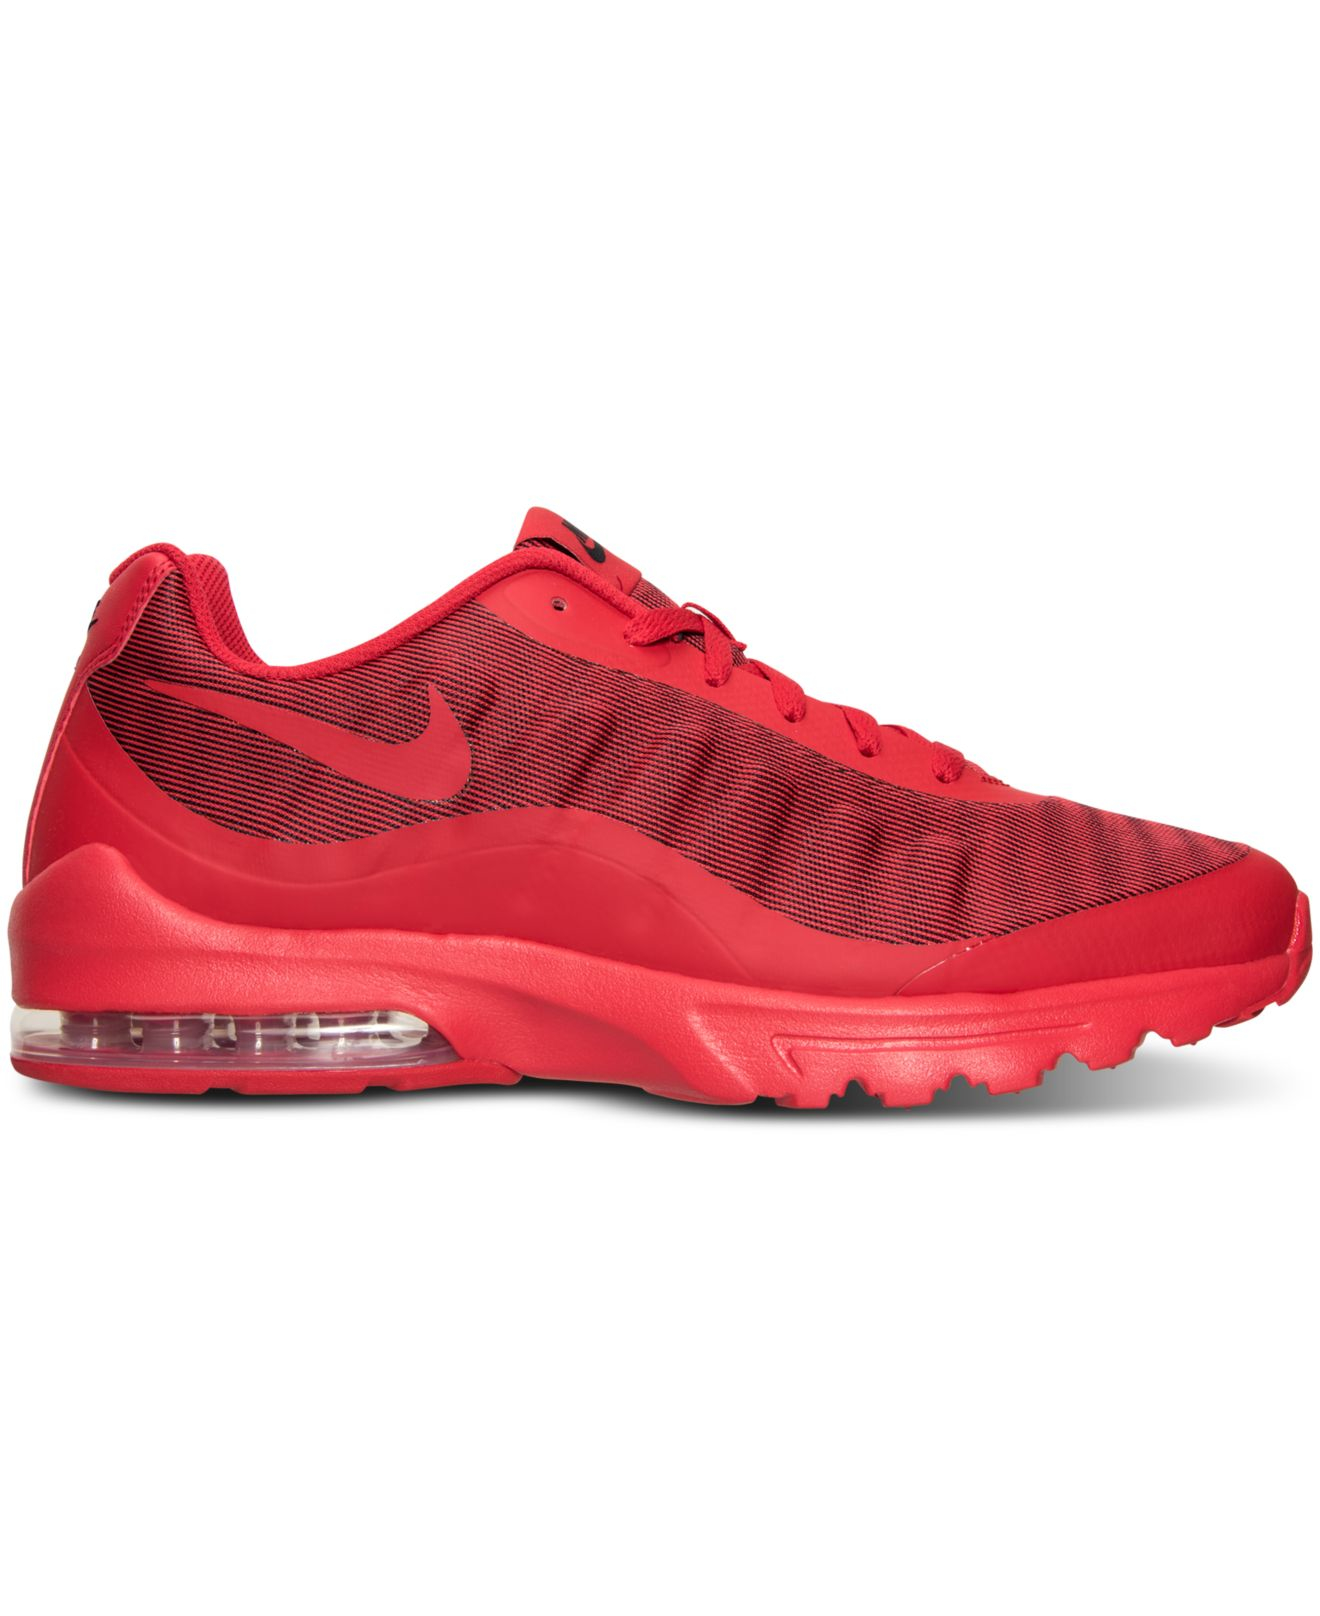 1a1cd6af05 ... discount code for lyst nike mens air max invigor premium running  sneakers from 68c41 69542